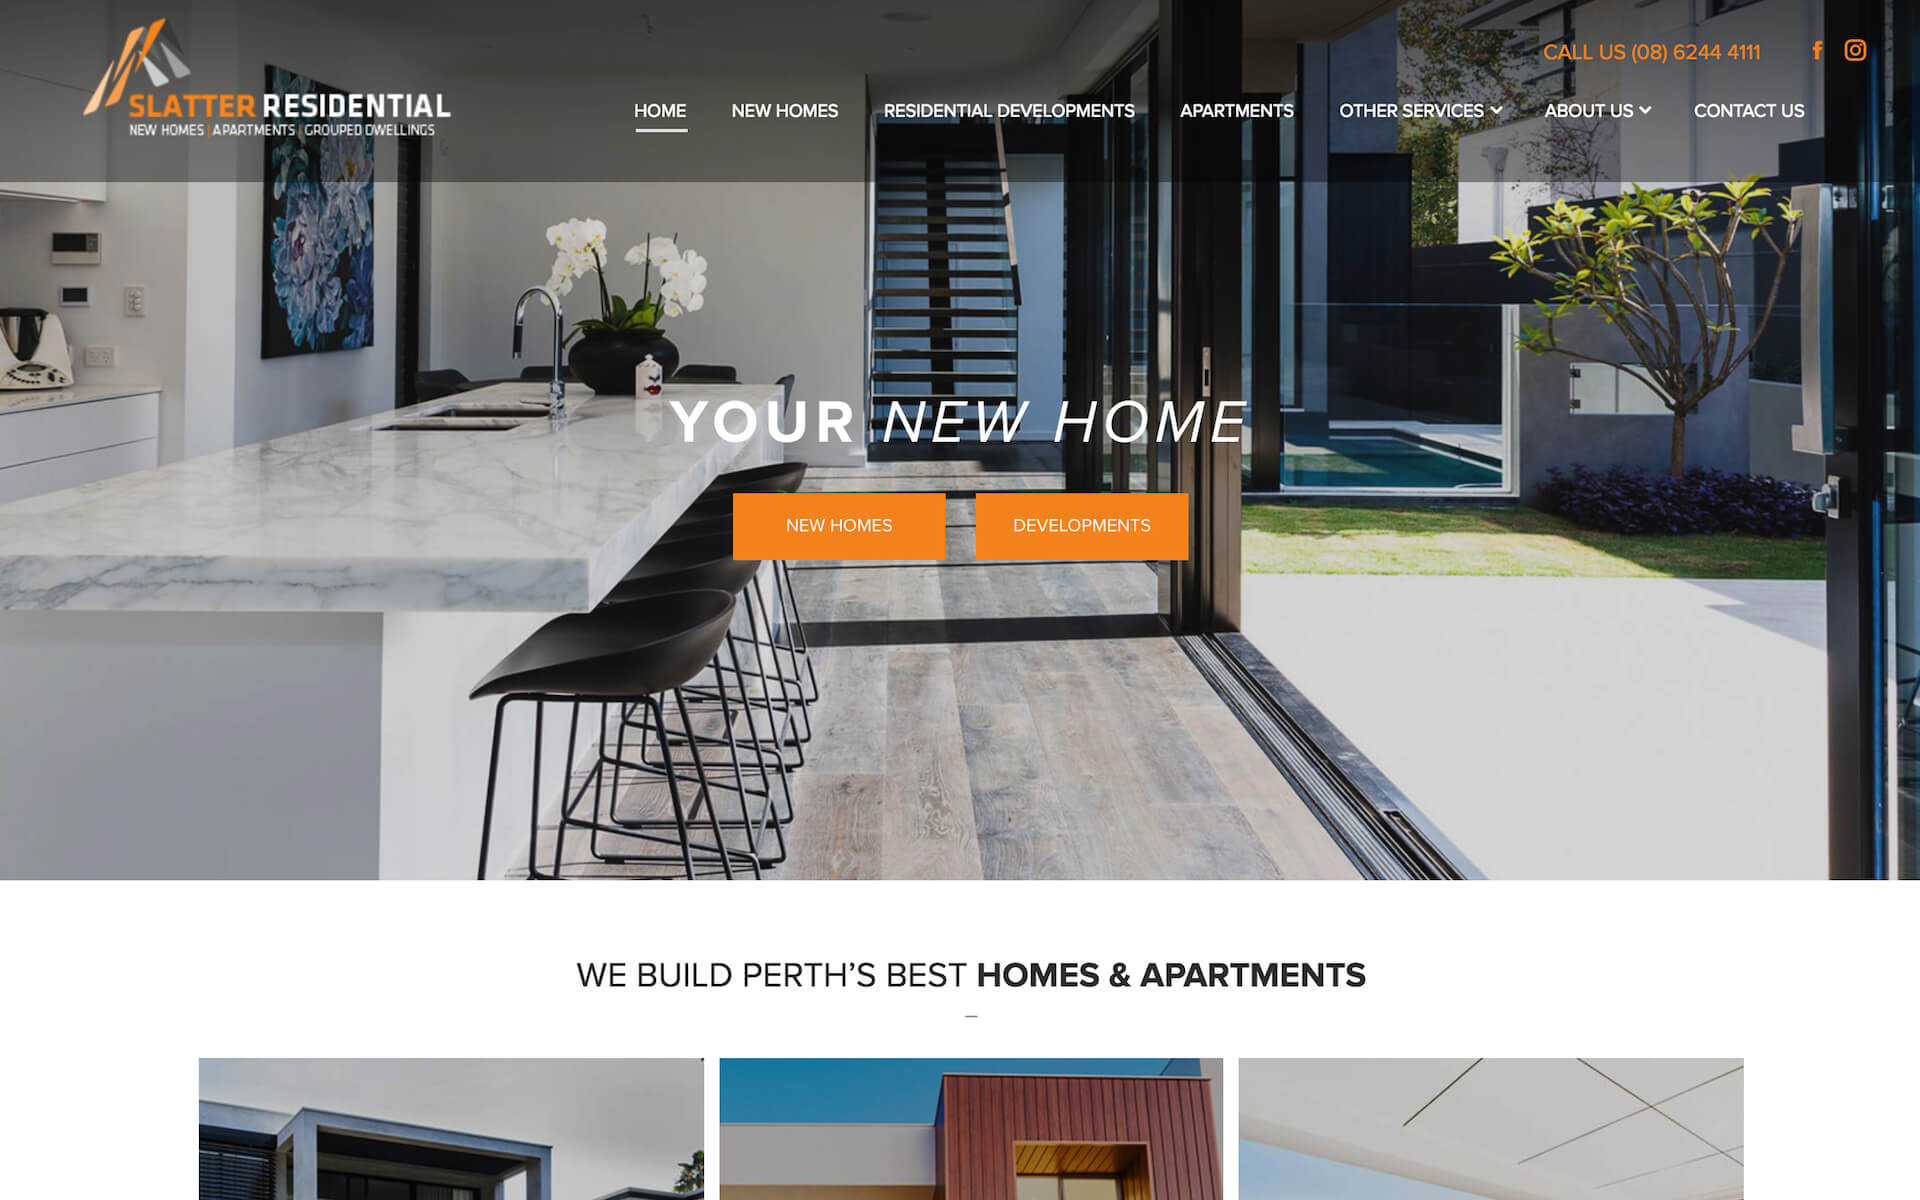 Before and after Digital Hitmen redesigned Slatter Residential